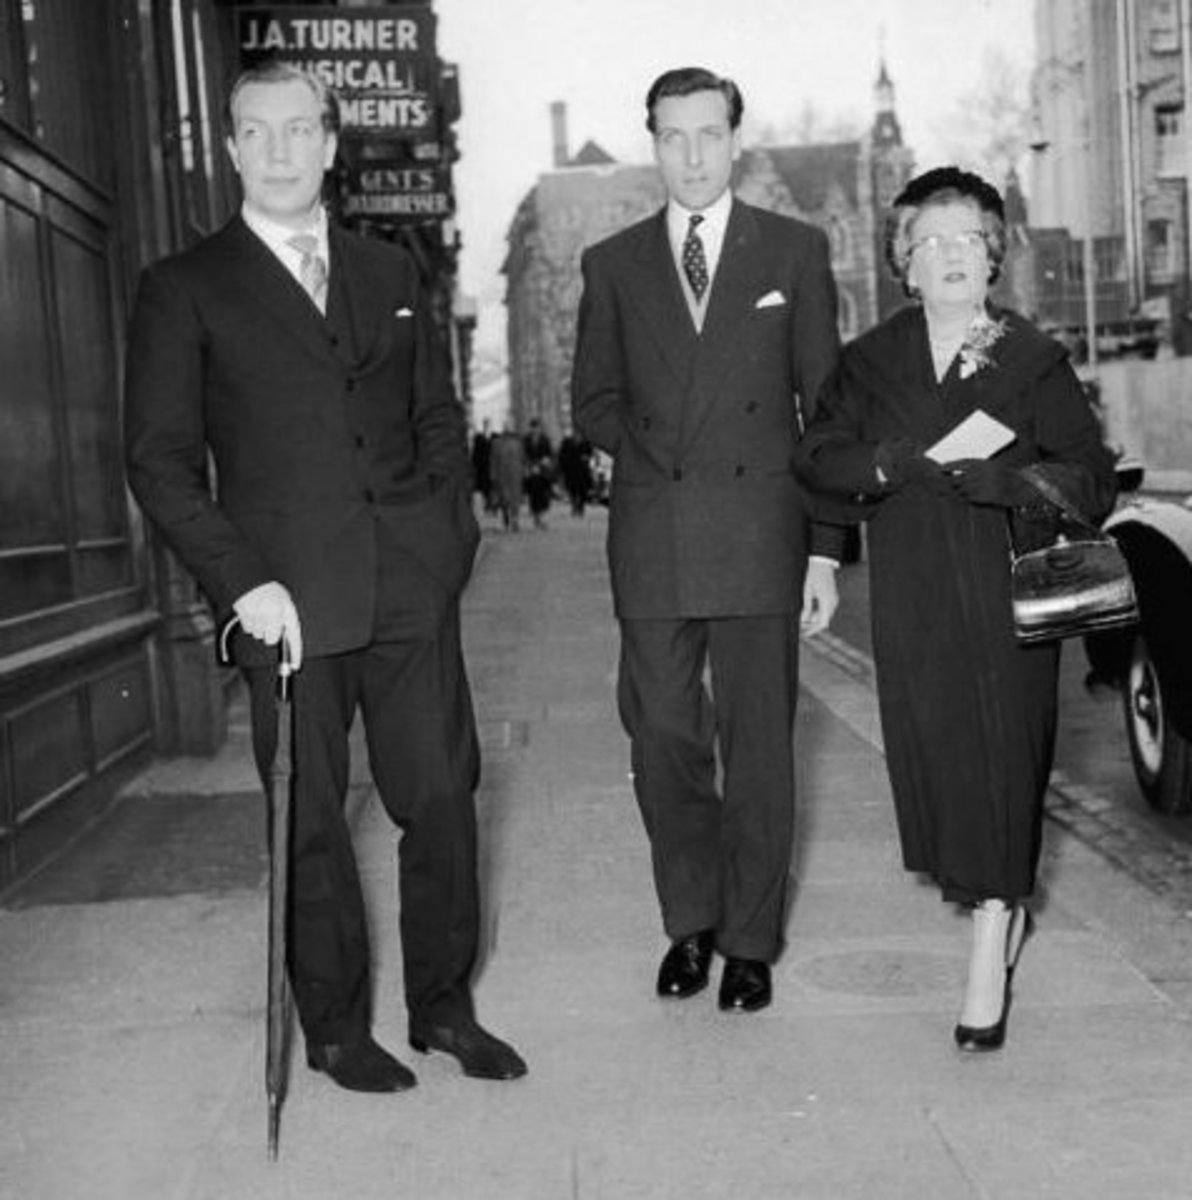 From left to right, John Aspinall, John Burke, and Aspinall's mother, Lady Osborne, arrive for a court hearing, all charged with gaming offences, 15th February 1958. (They were acquitted)